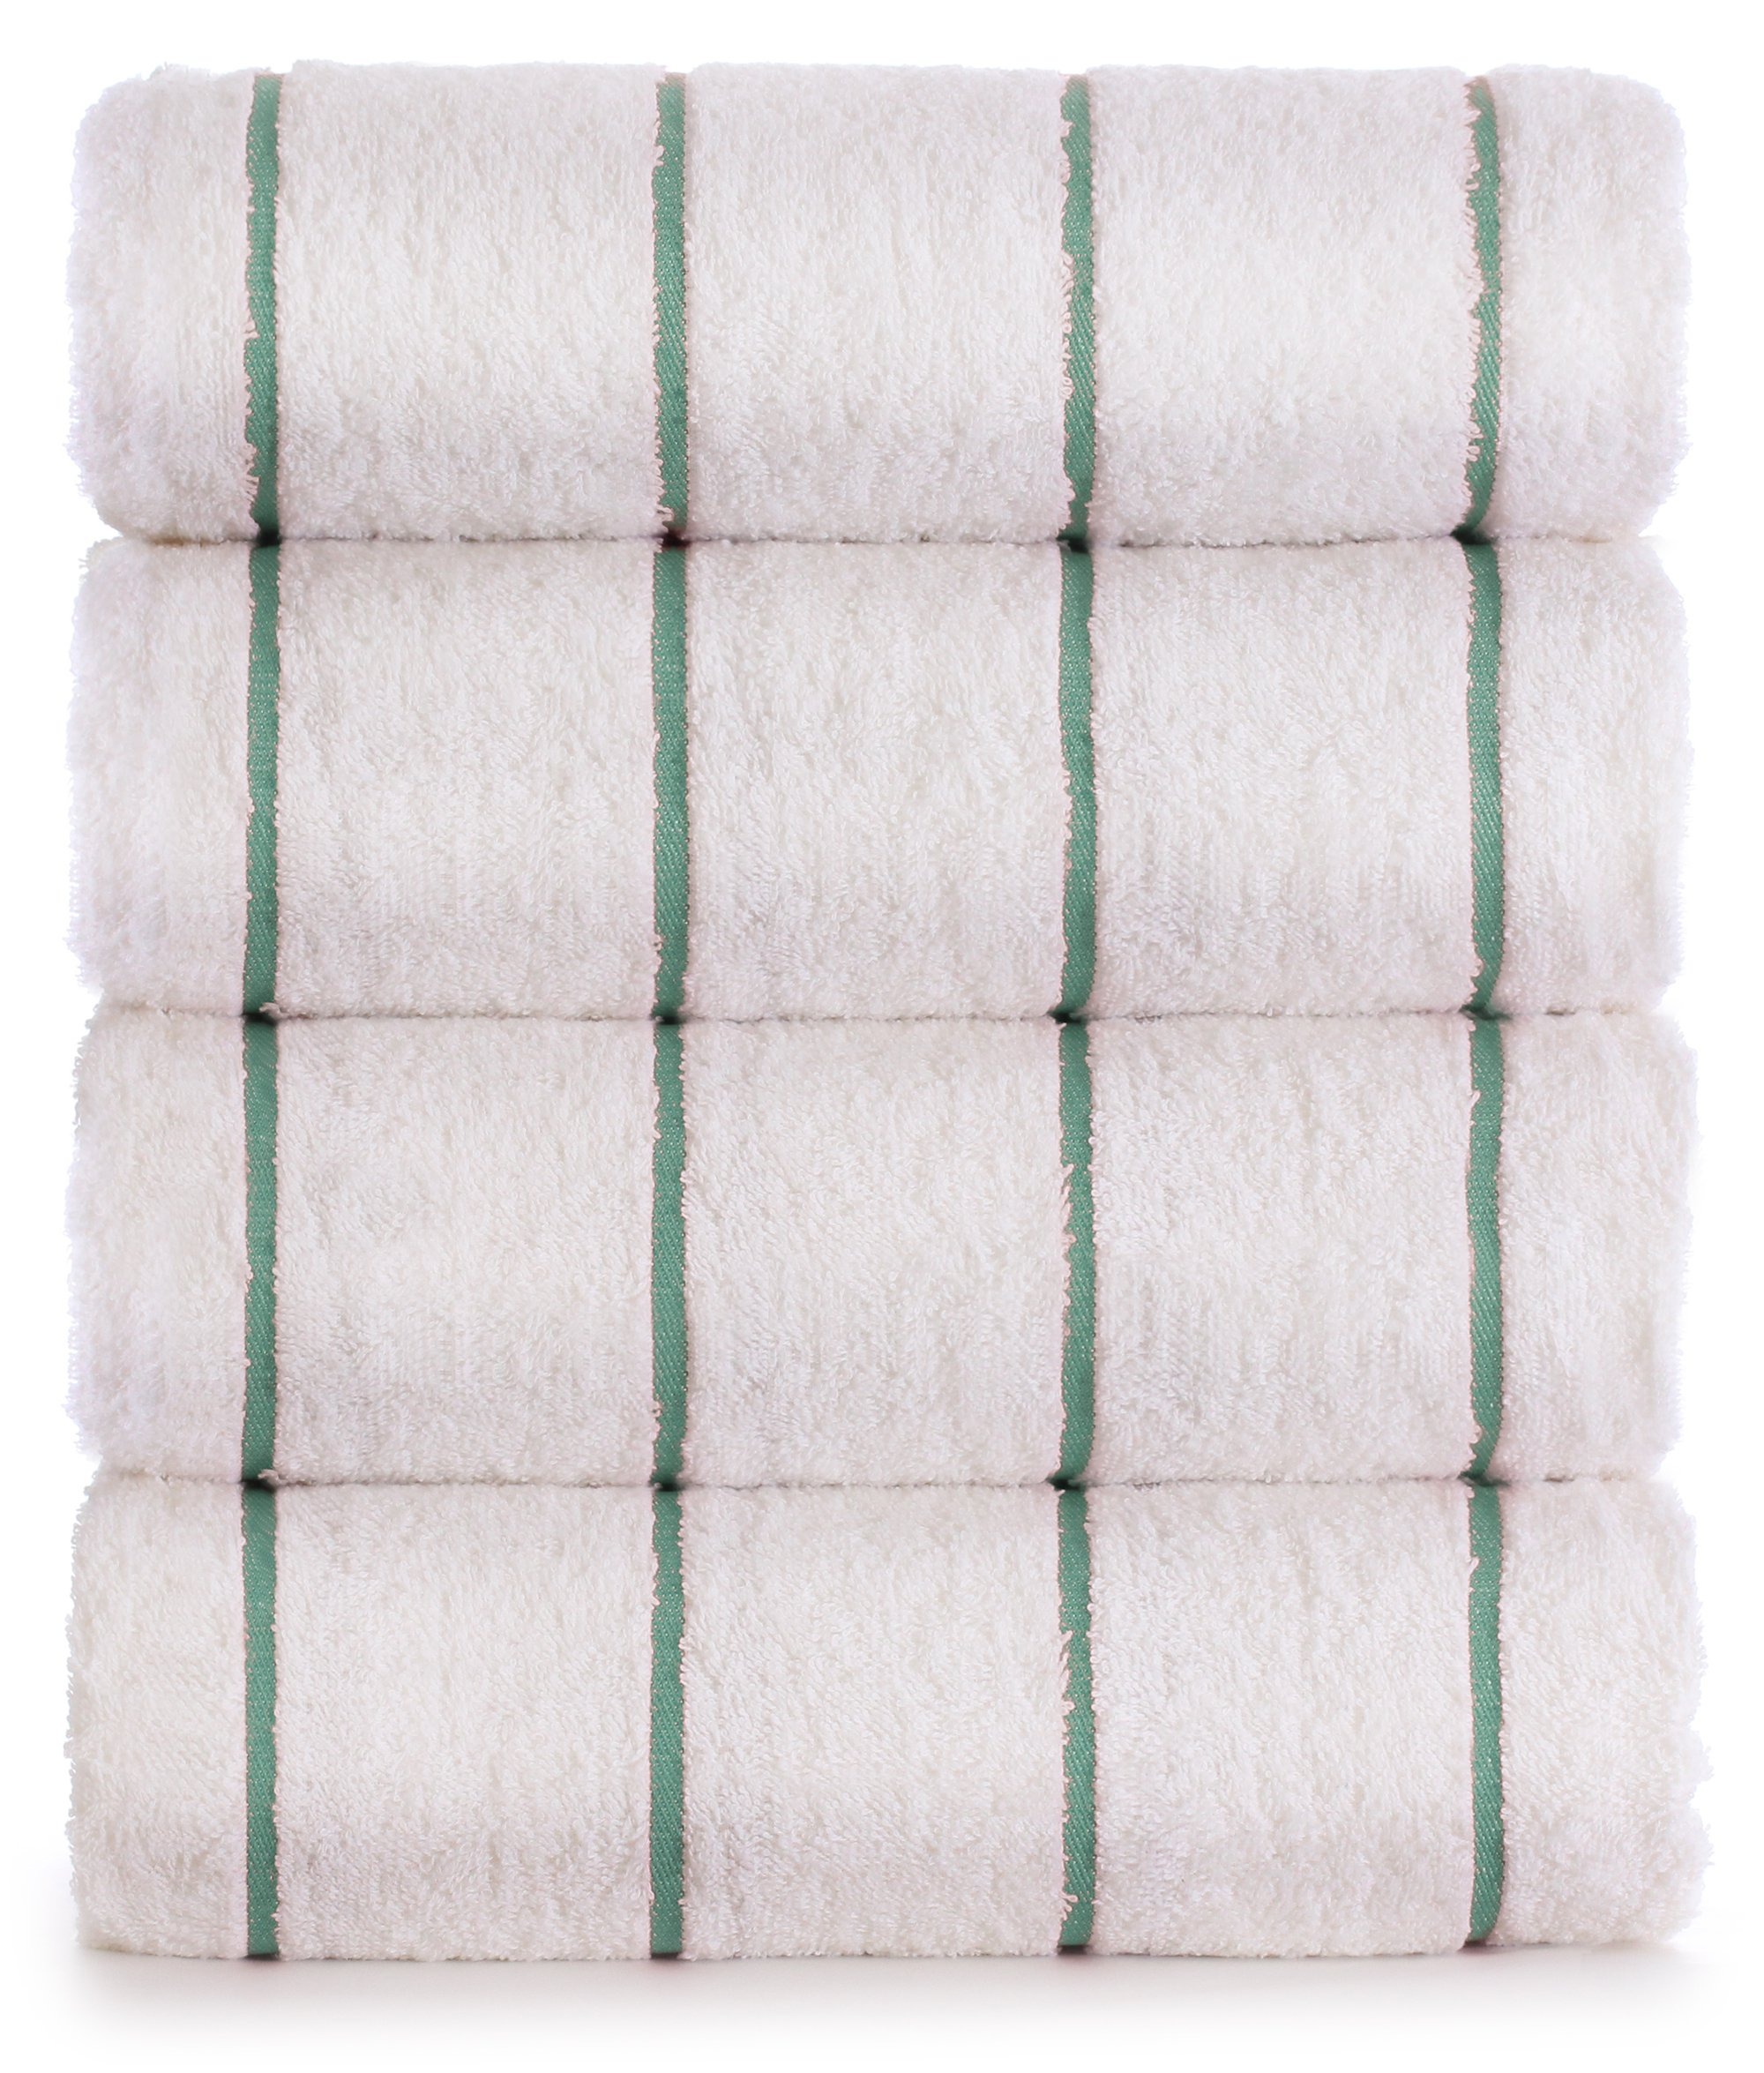 Premium Quality Extra Large Hotel and Spa 4-Piece Beach Towels, Pool Towels with Stripe, Eco-friendly, Turkish Cotton (Sea Green, 35x65 inches)